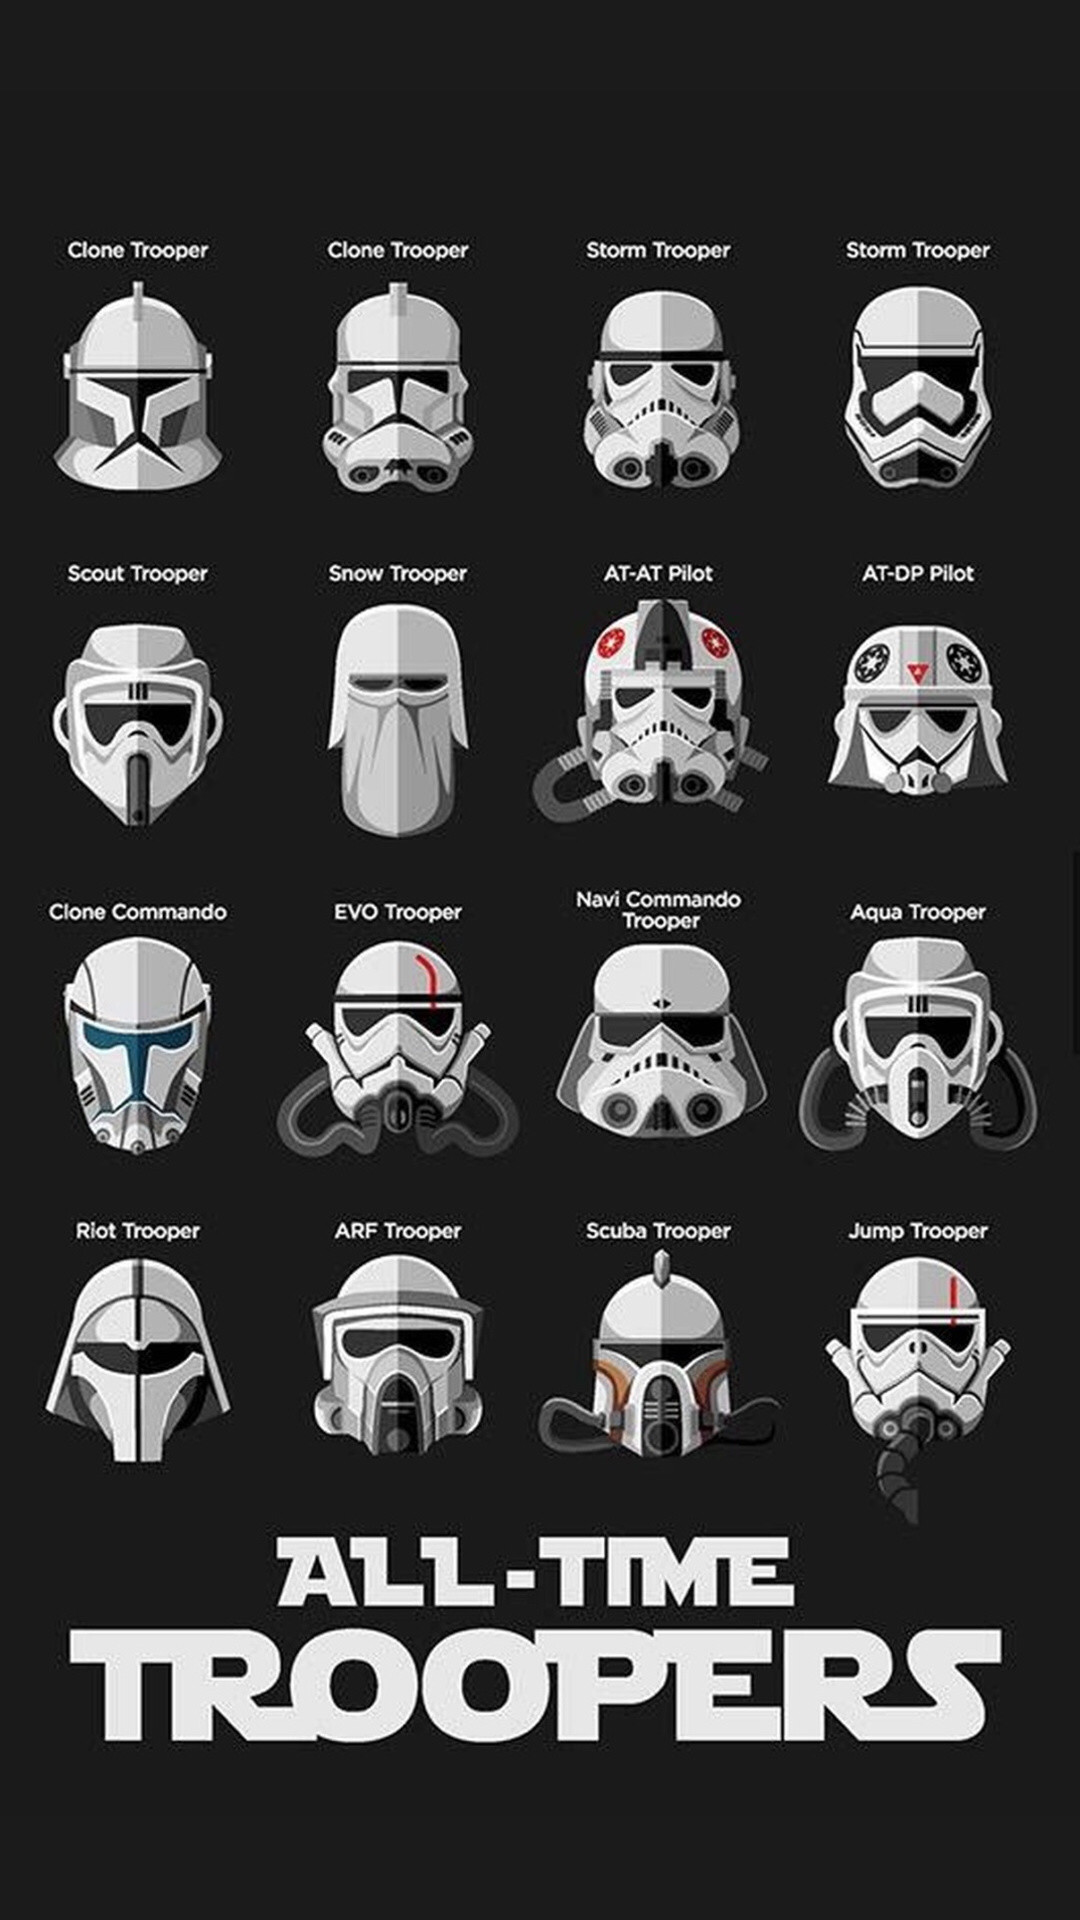 1080x1920 All-time storm troopers